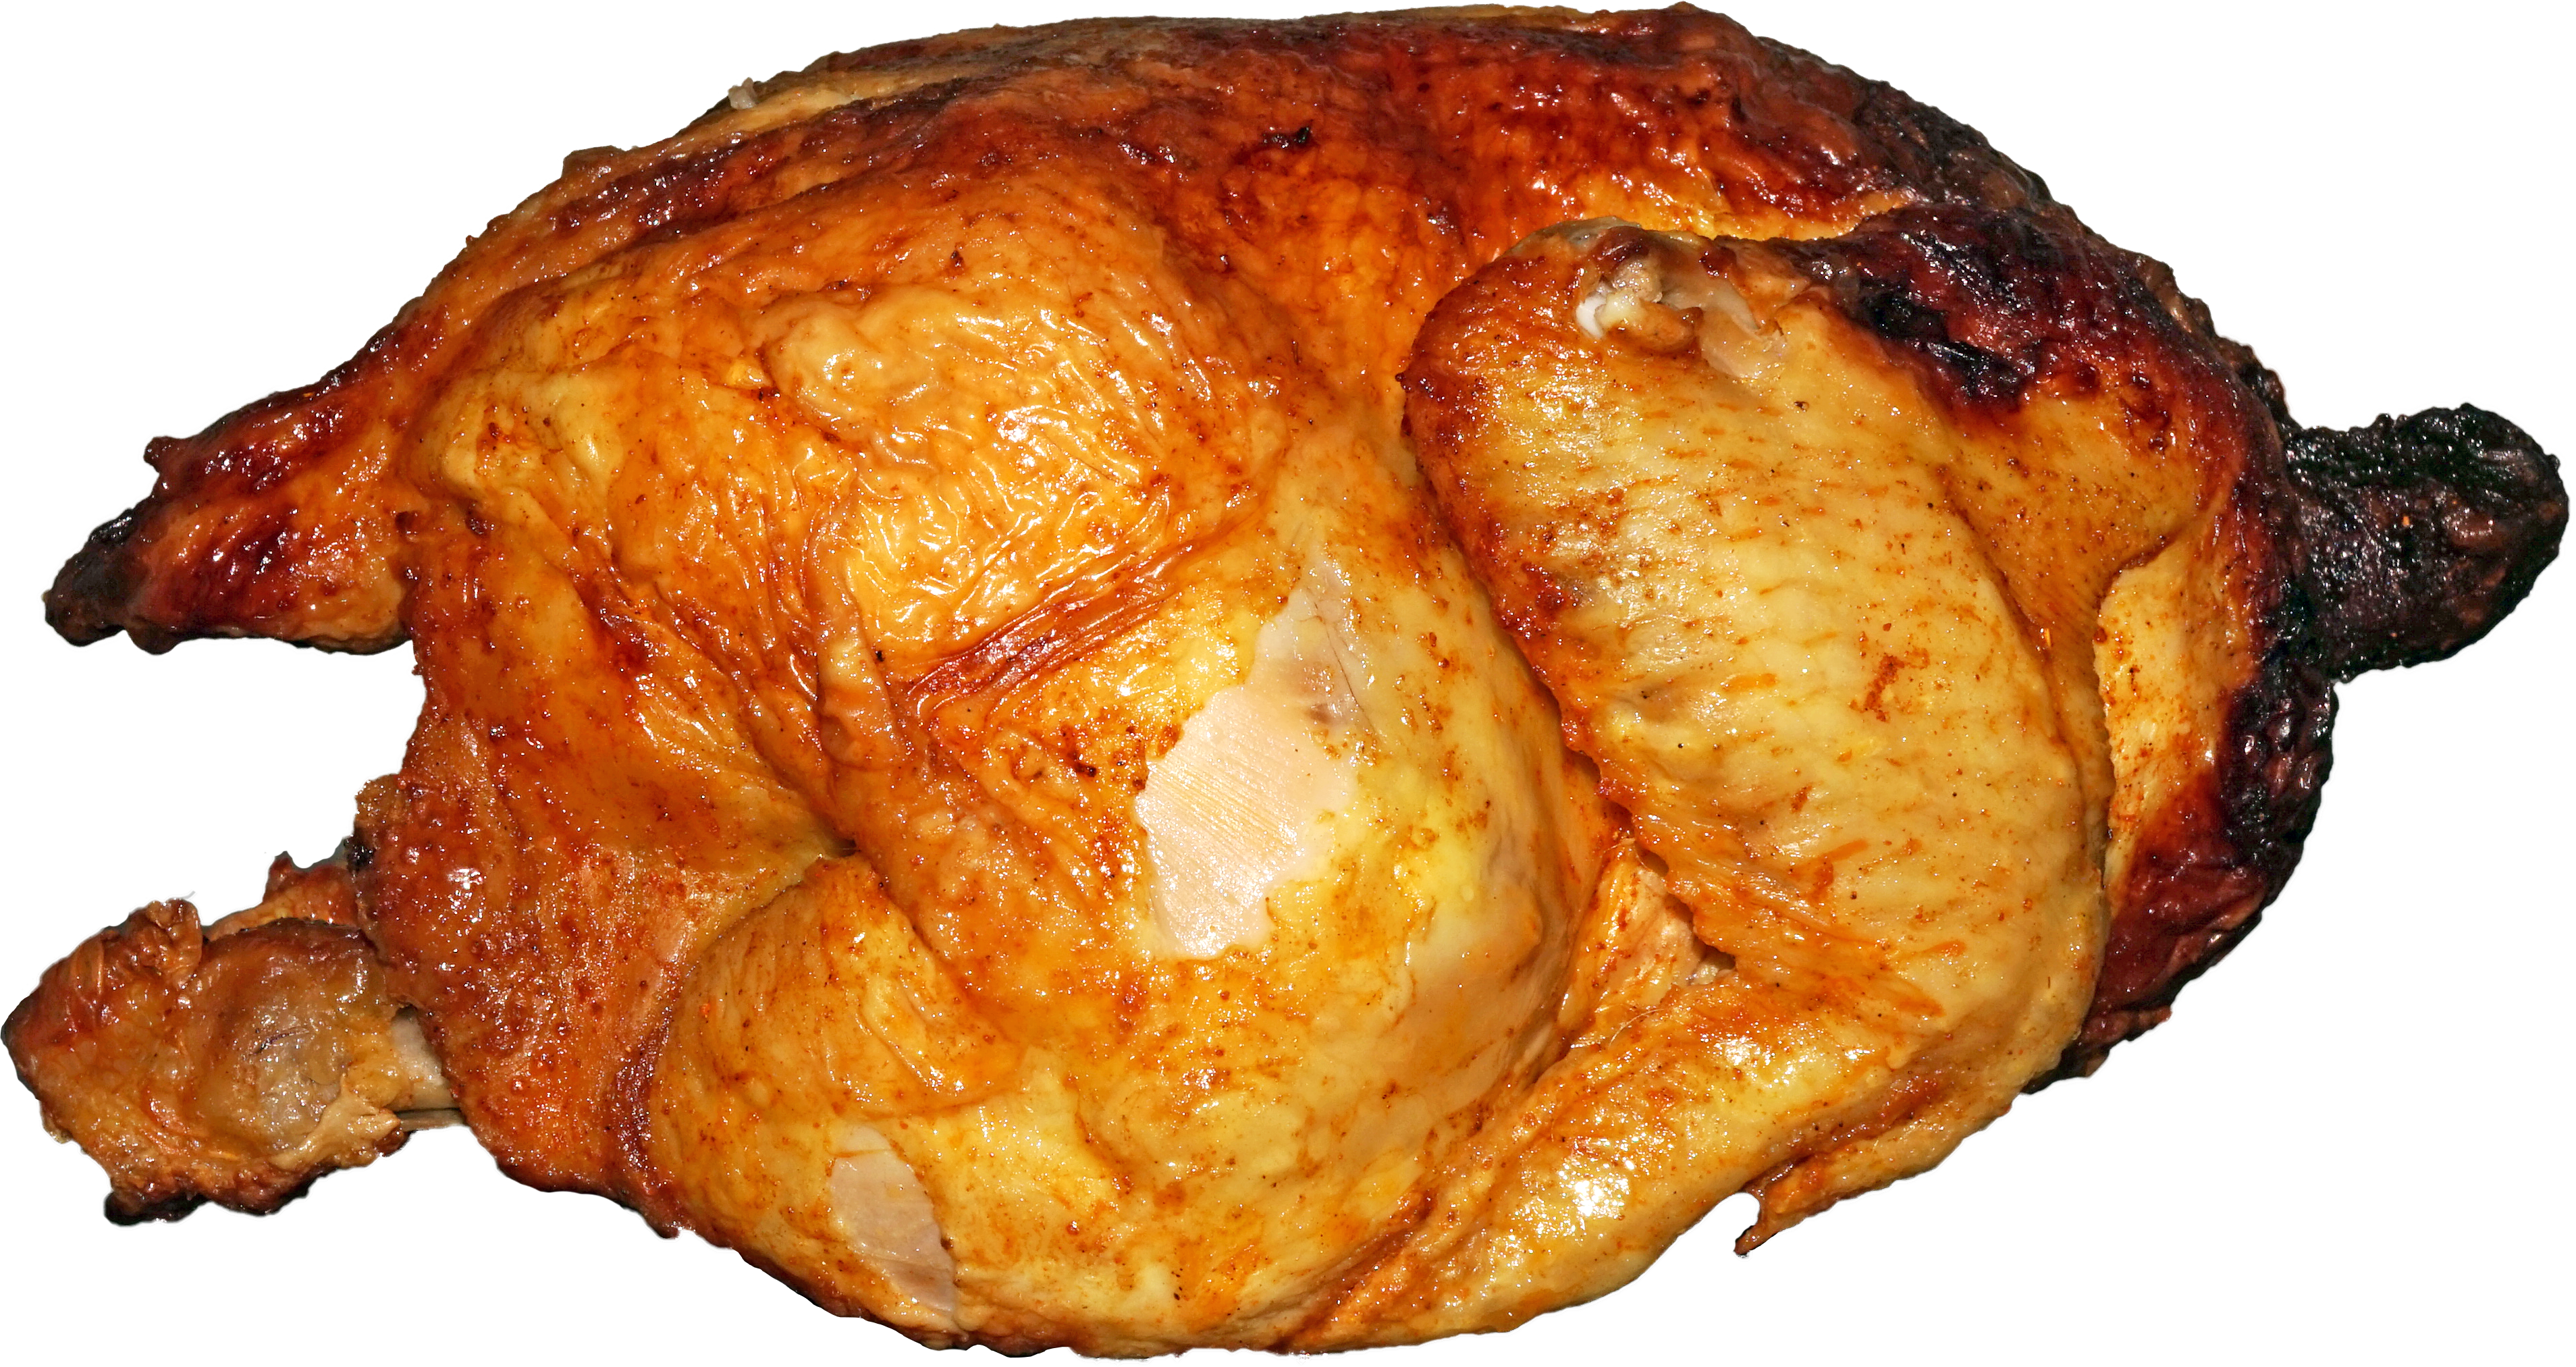 Chicken png. File wikimedia commons filechickenpng